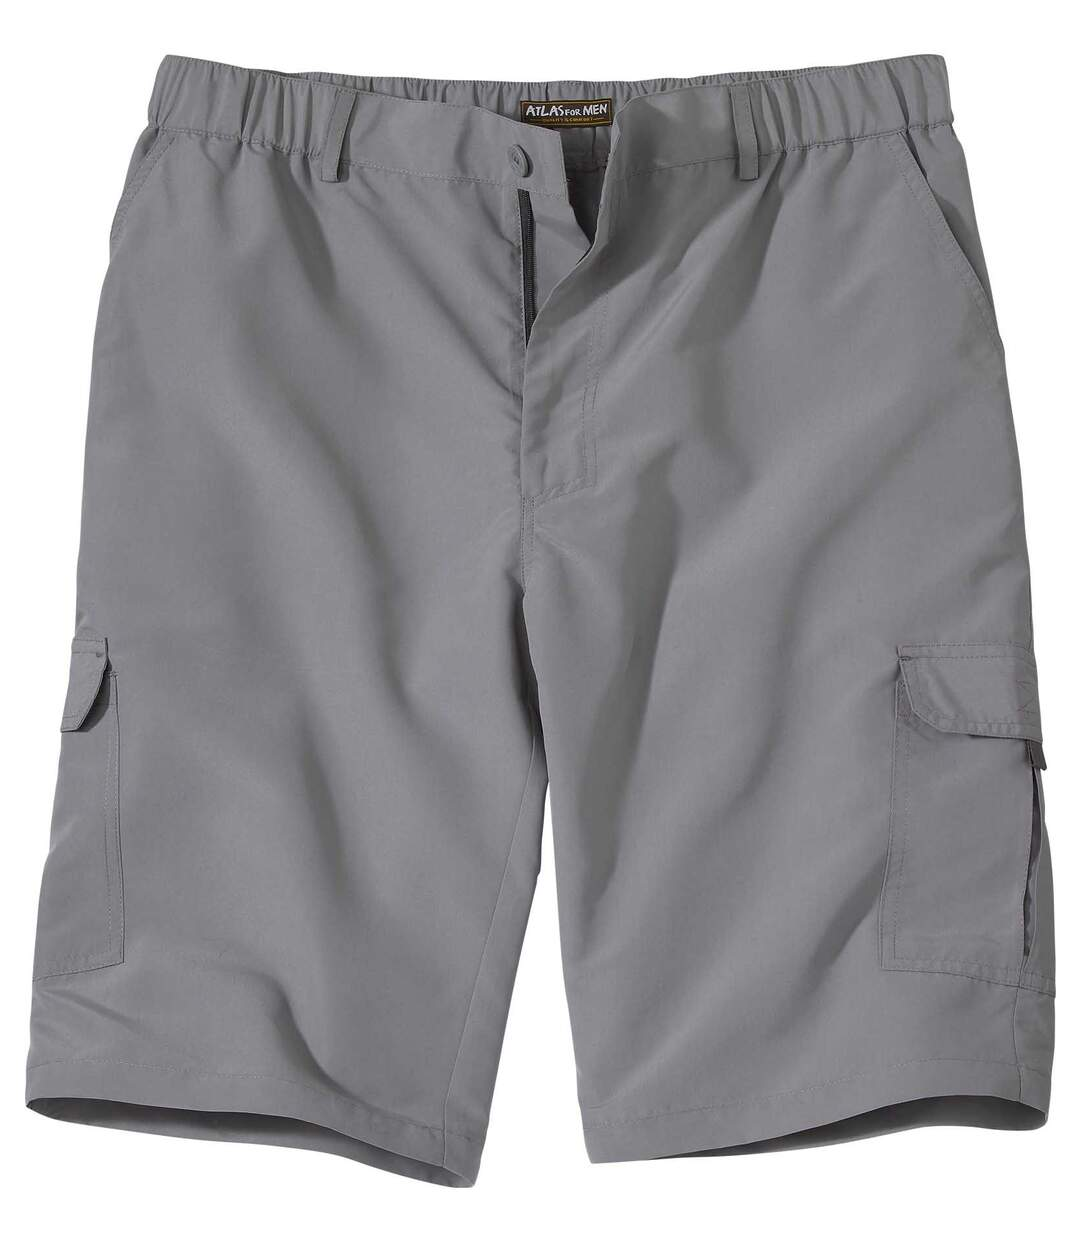 Men's Grey Microfibre Bermuda Cargo Shorts